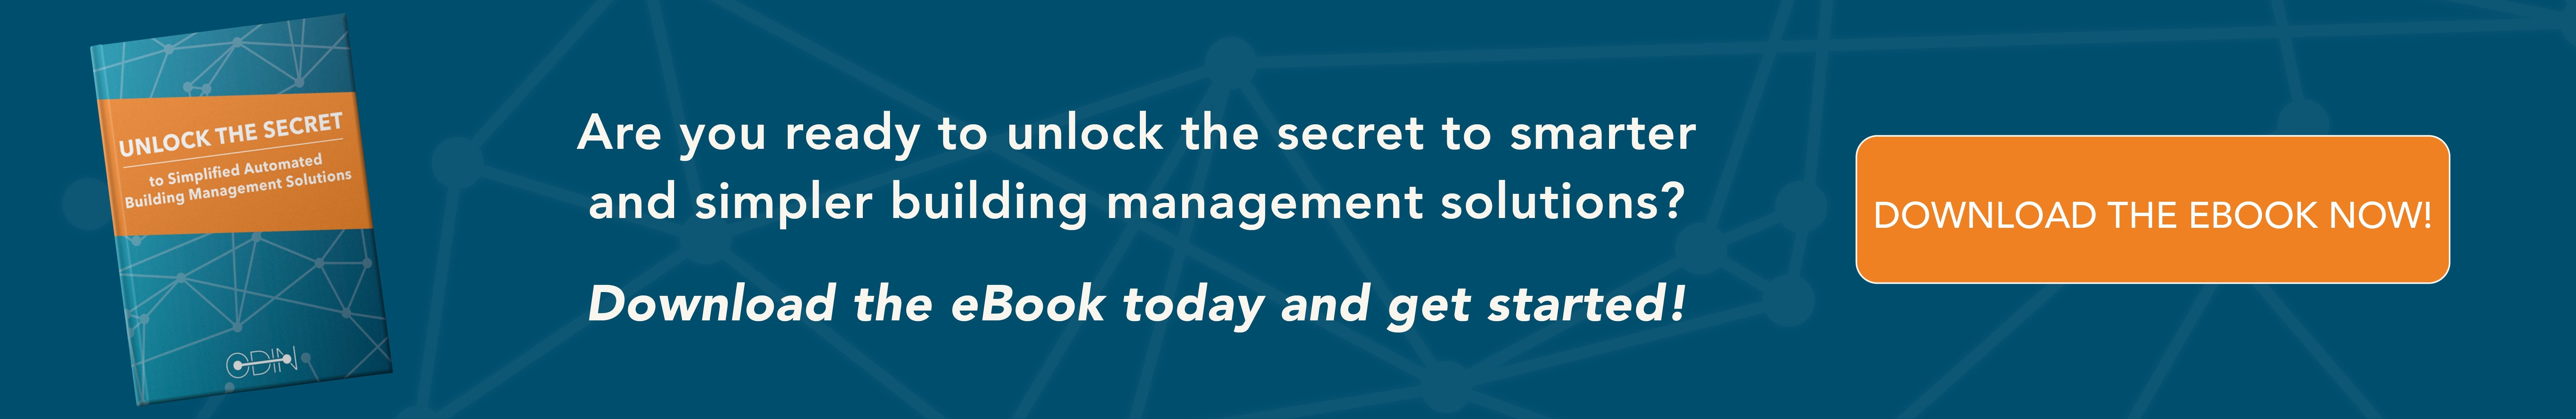 Unlock the Secret to Simplified Automated Building Management Solutions